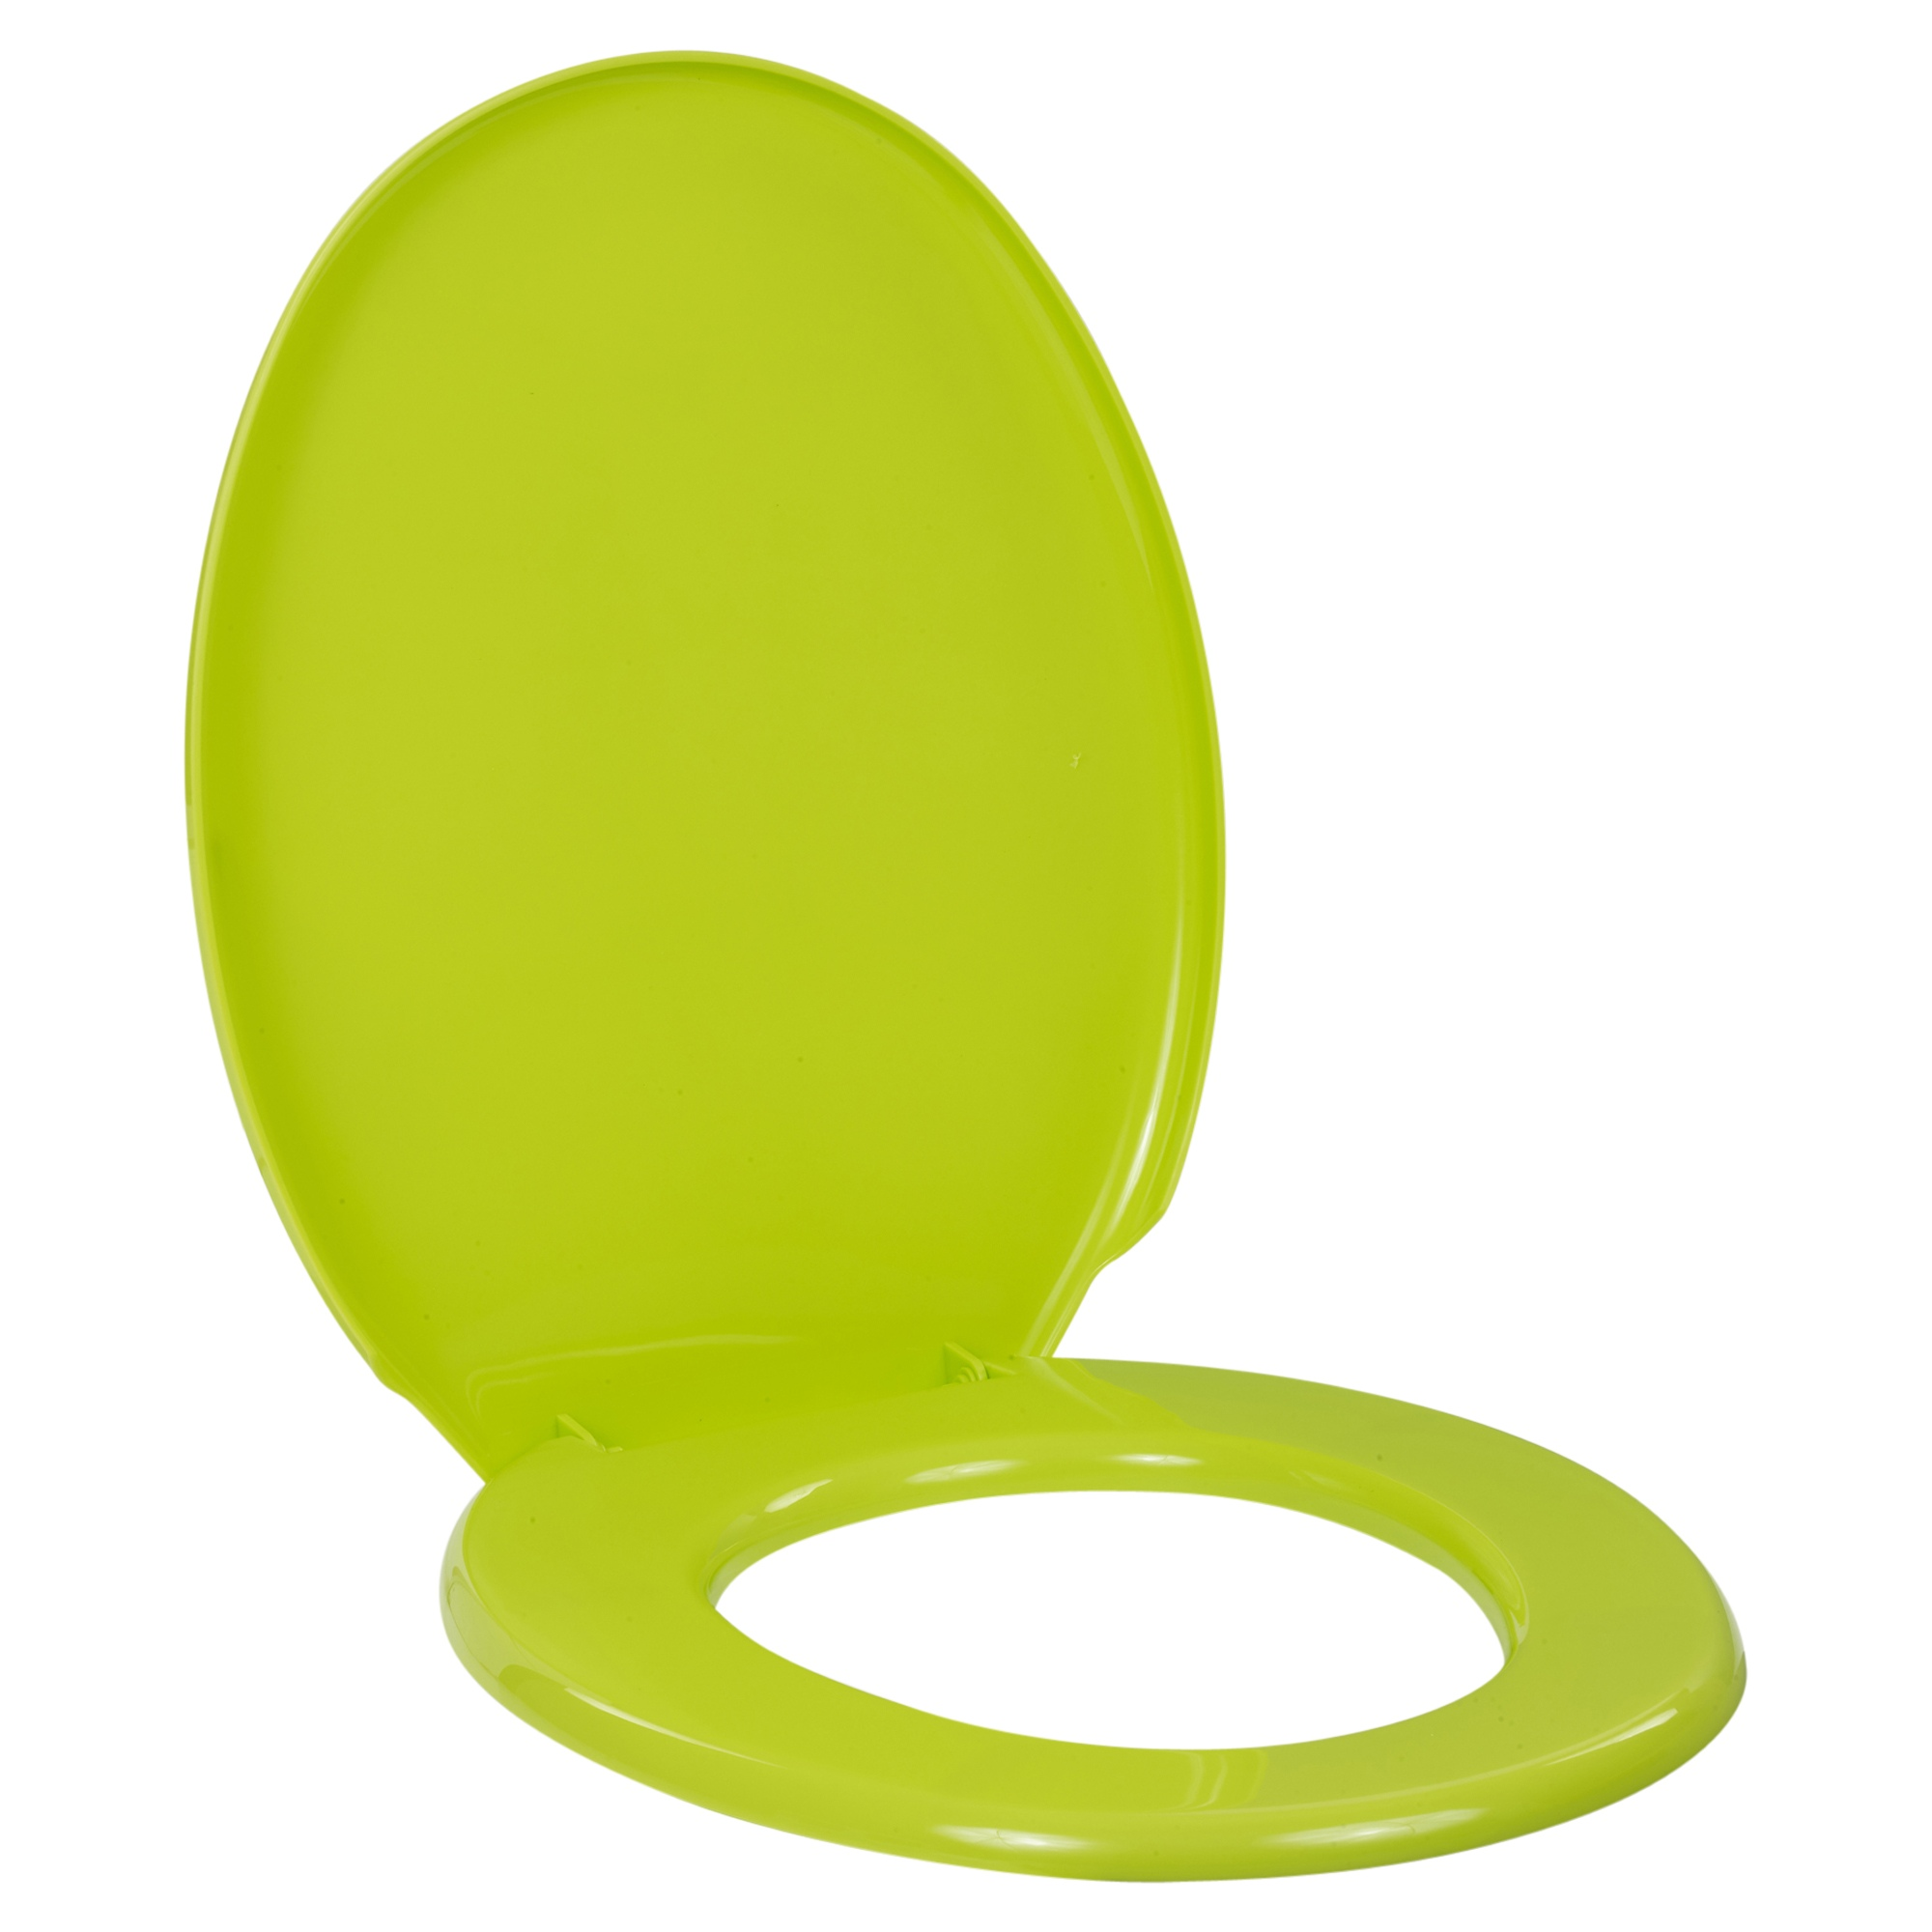 Coloured Universal Toilet Seat Easy Clean Oval Shape Durable Plastic Bathroom WC